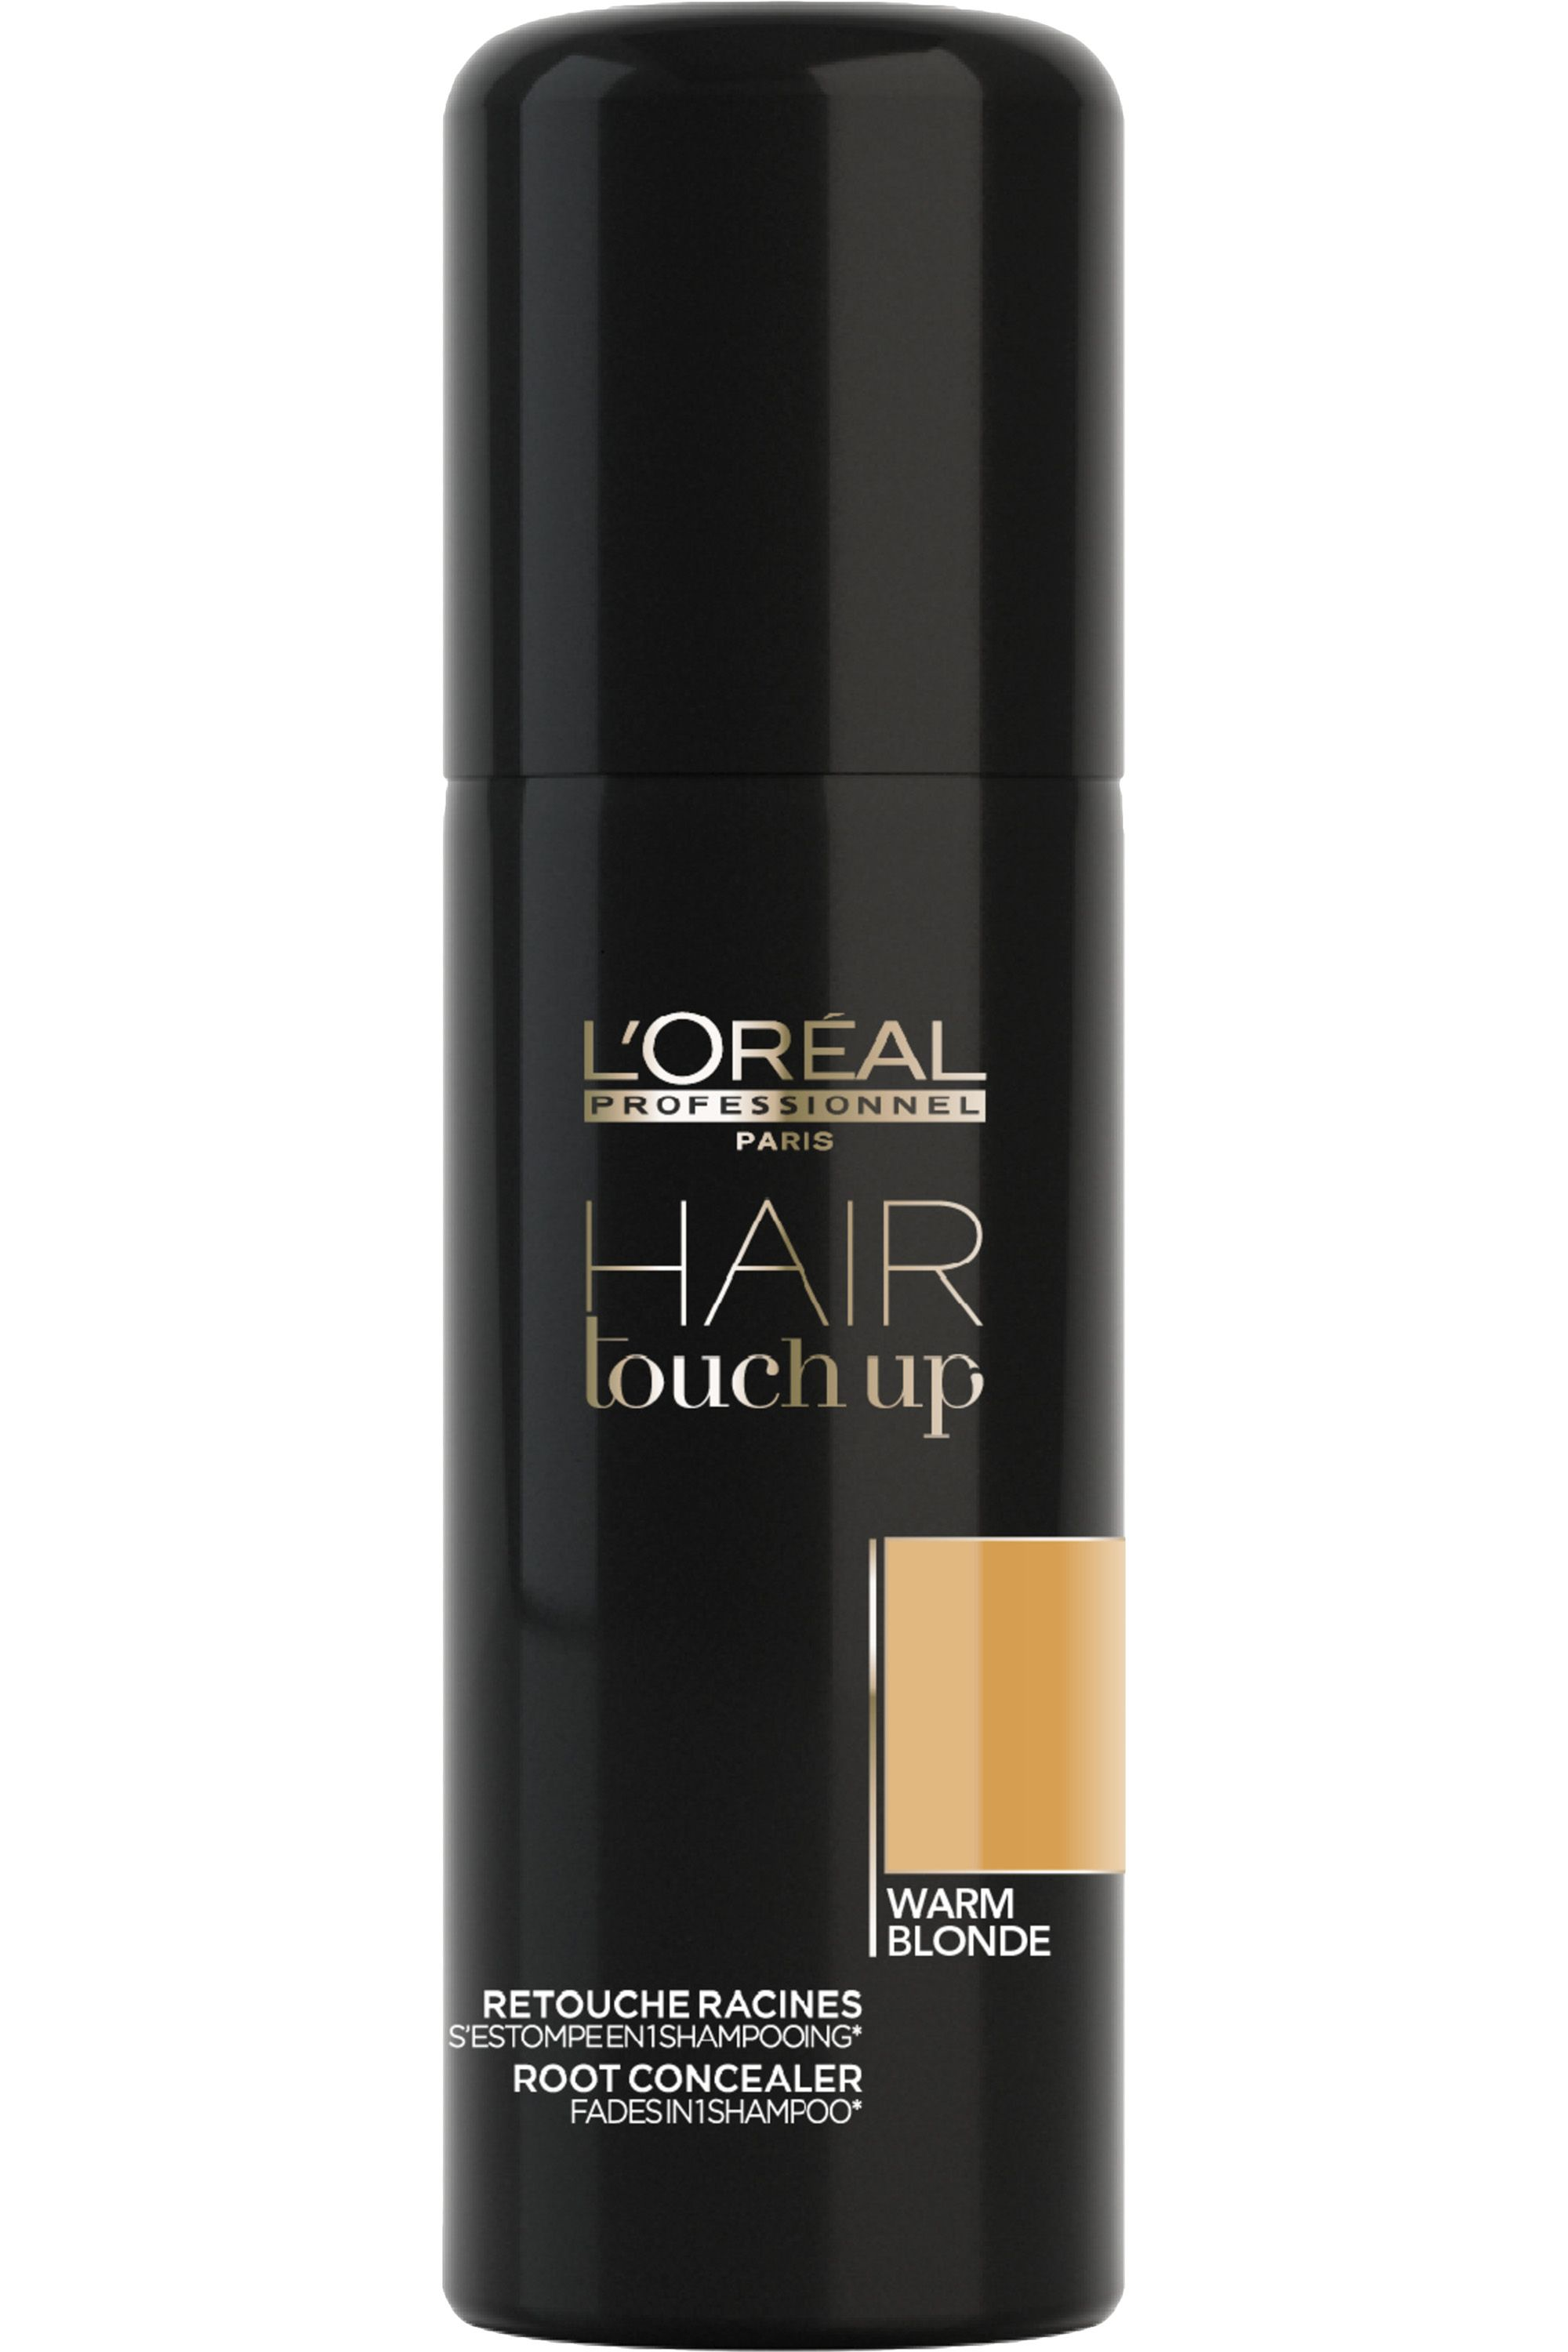 Blissim : L'Oréal Professionnel - Hair Touch Up - Blond Doré